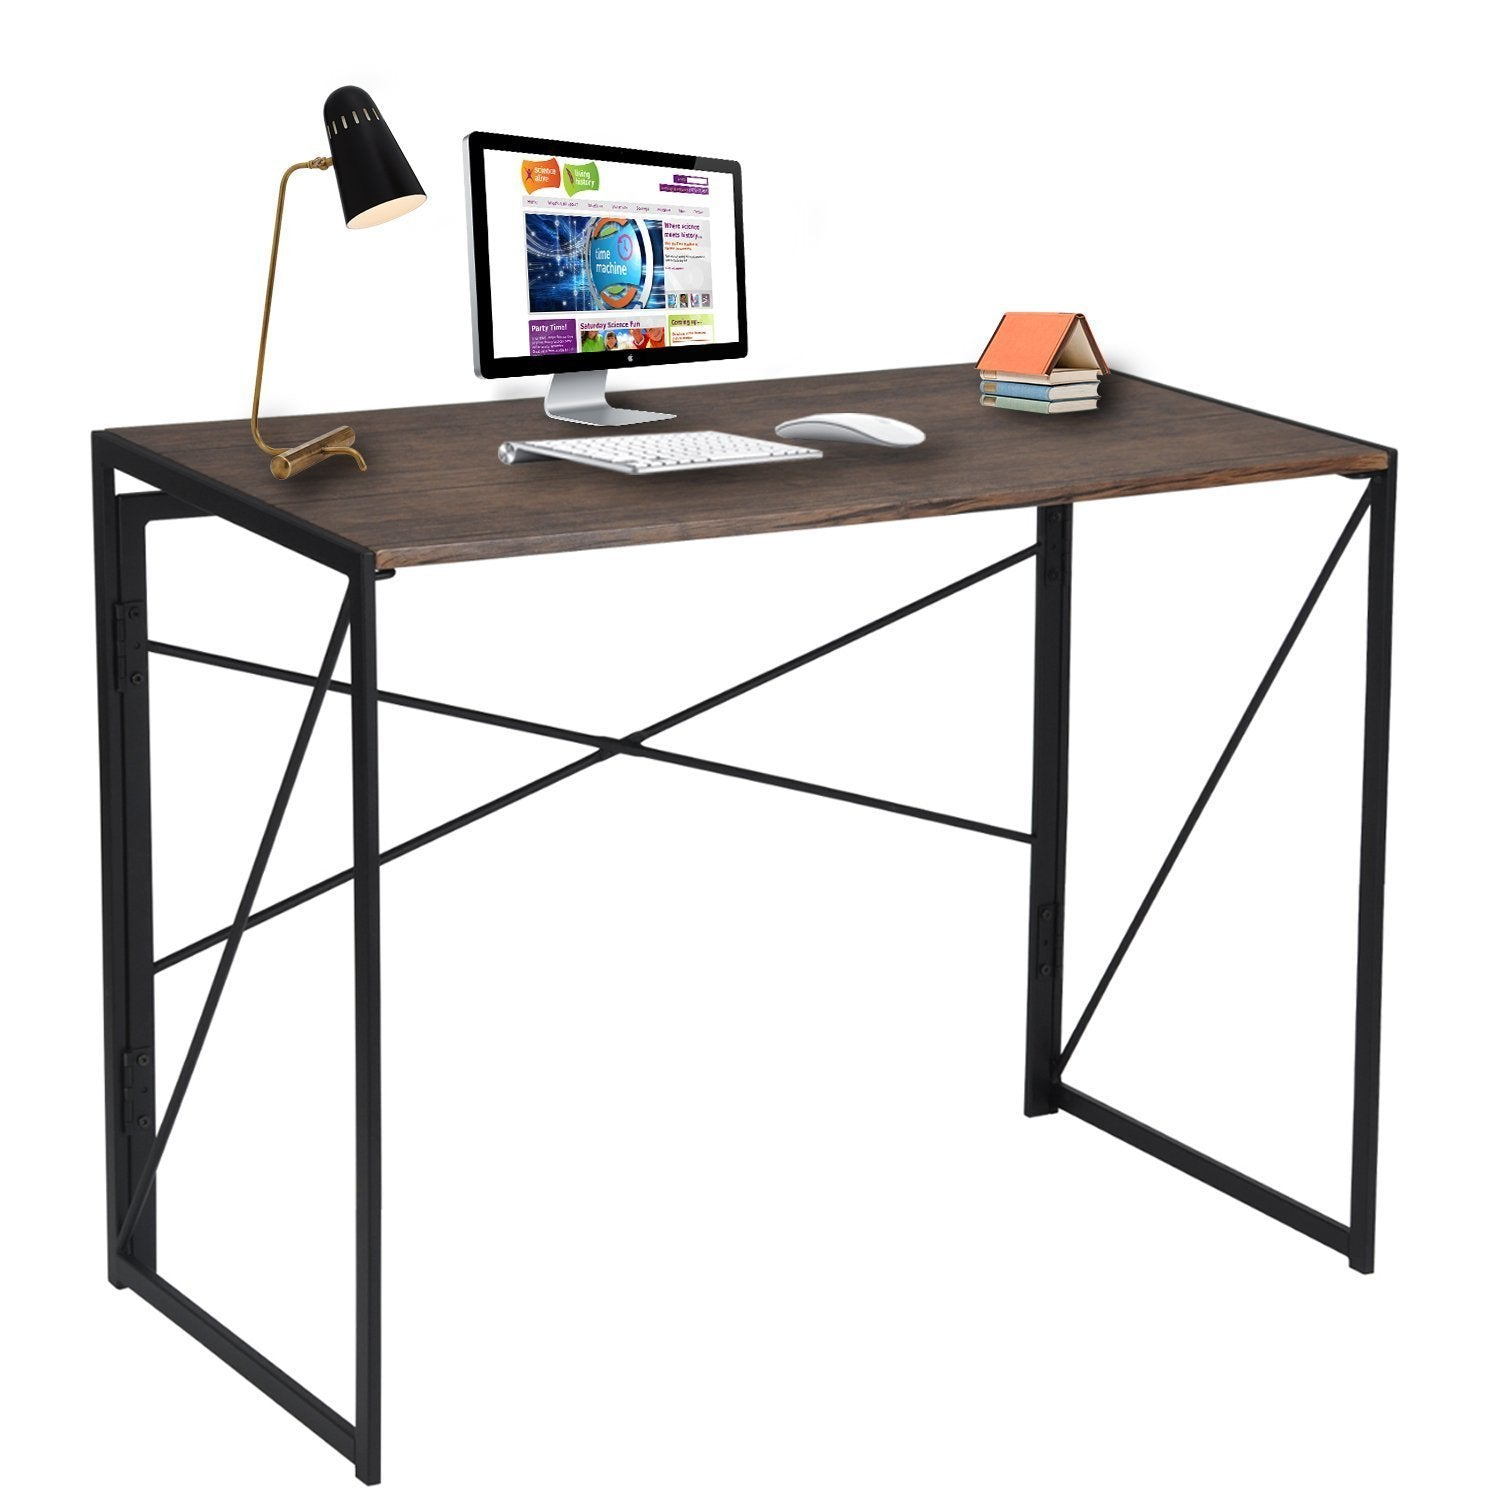 Folding Table Coavas Wooden PC Foldable Study Laptop Desk – daal s